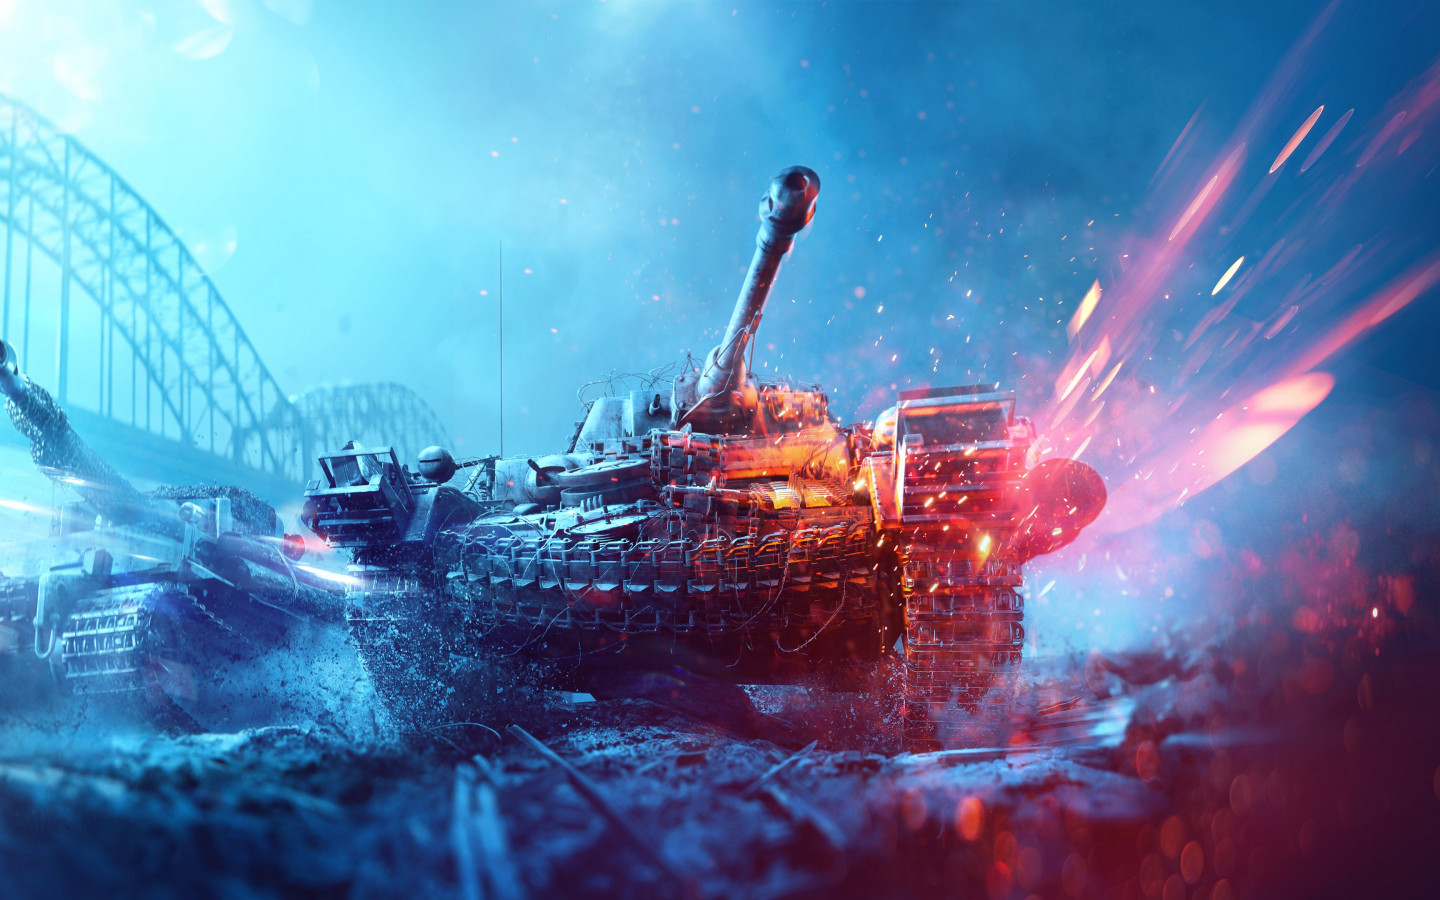 Battlefield 5 poster with tanks wallpaper 1440x900